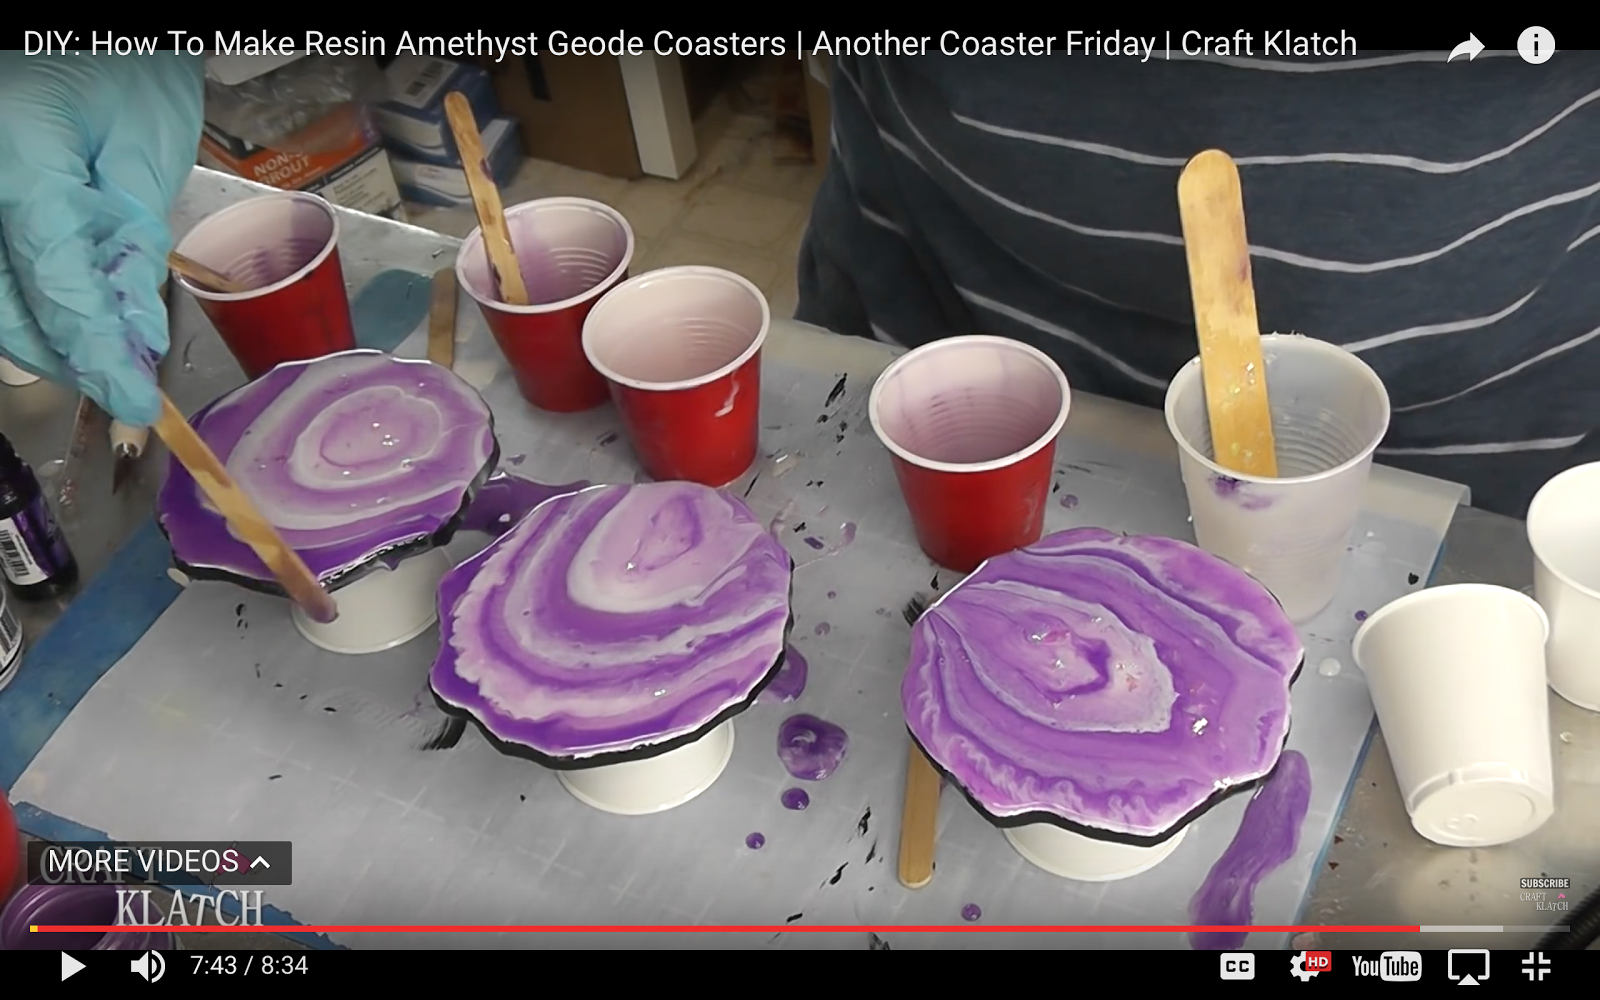 Craft Klatch ®: DIY: How To Make Resin Geode Coasters